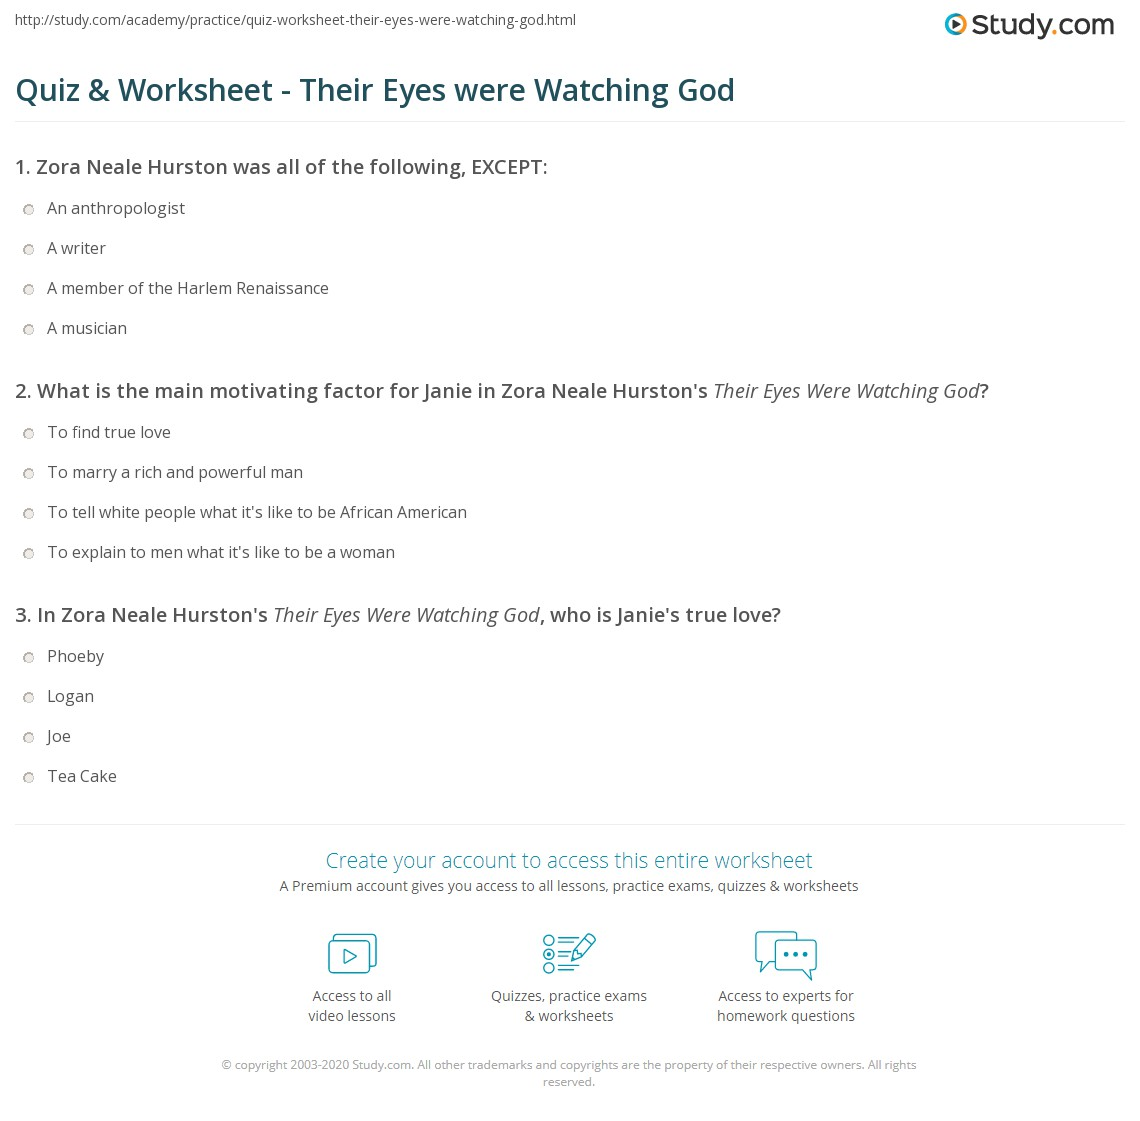 analytical essays on their eyes were watching god their eyes were watching god lessons activities and homework ipgproje com